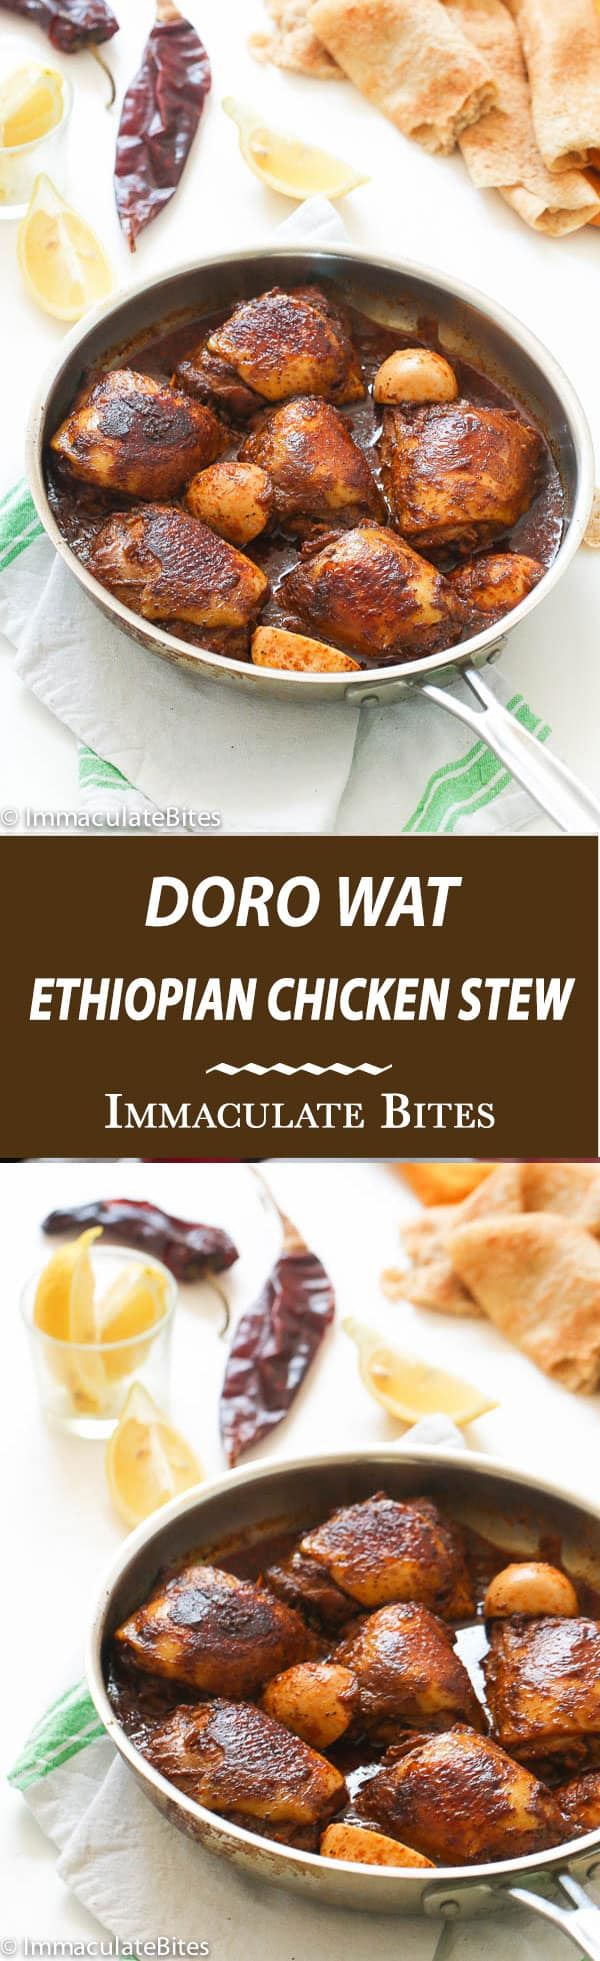 Doro wat ethiopian chicken stew immaculate bites doro wat ethiopian chicken stew slowly simmered in a blend of robust spices forumfinder Choice Image